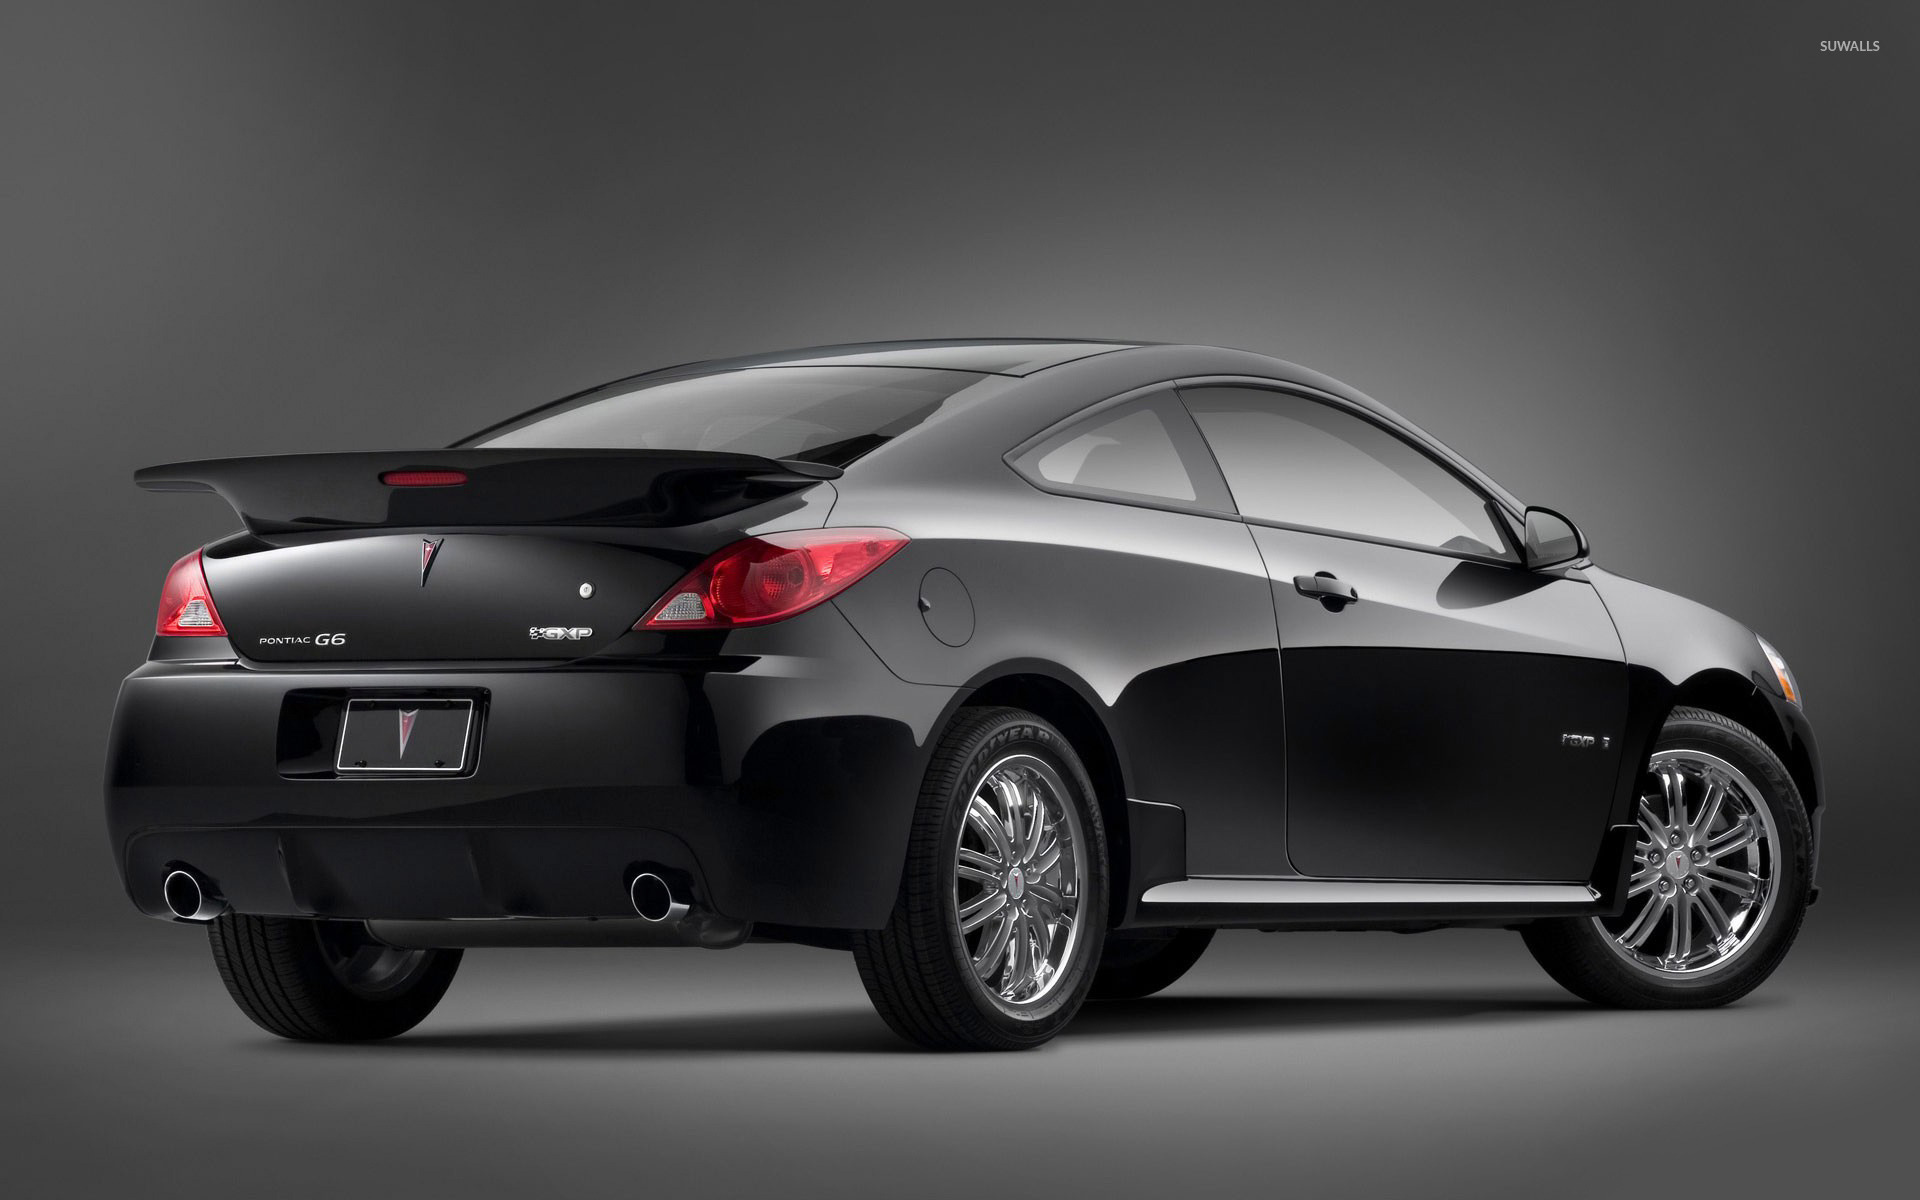 pontiac g6 gxp 2 wallpaper car wallpapers 12531. Black Bedroom Furniture Sets. Home Design Ideas